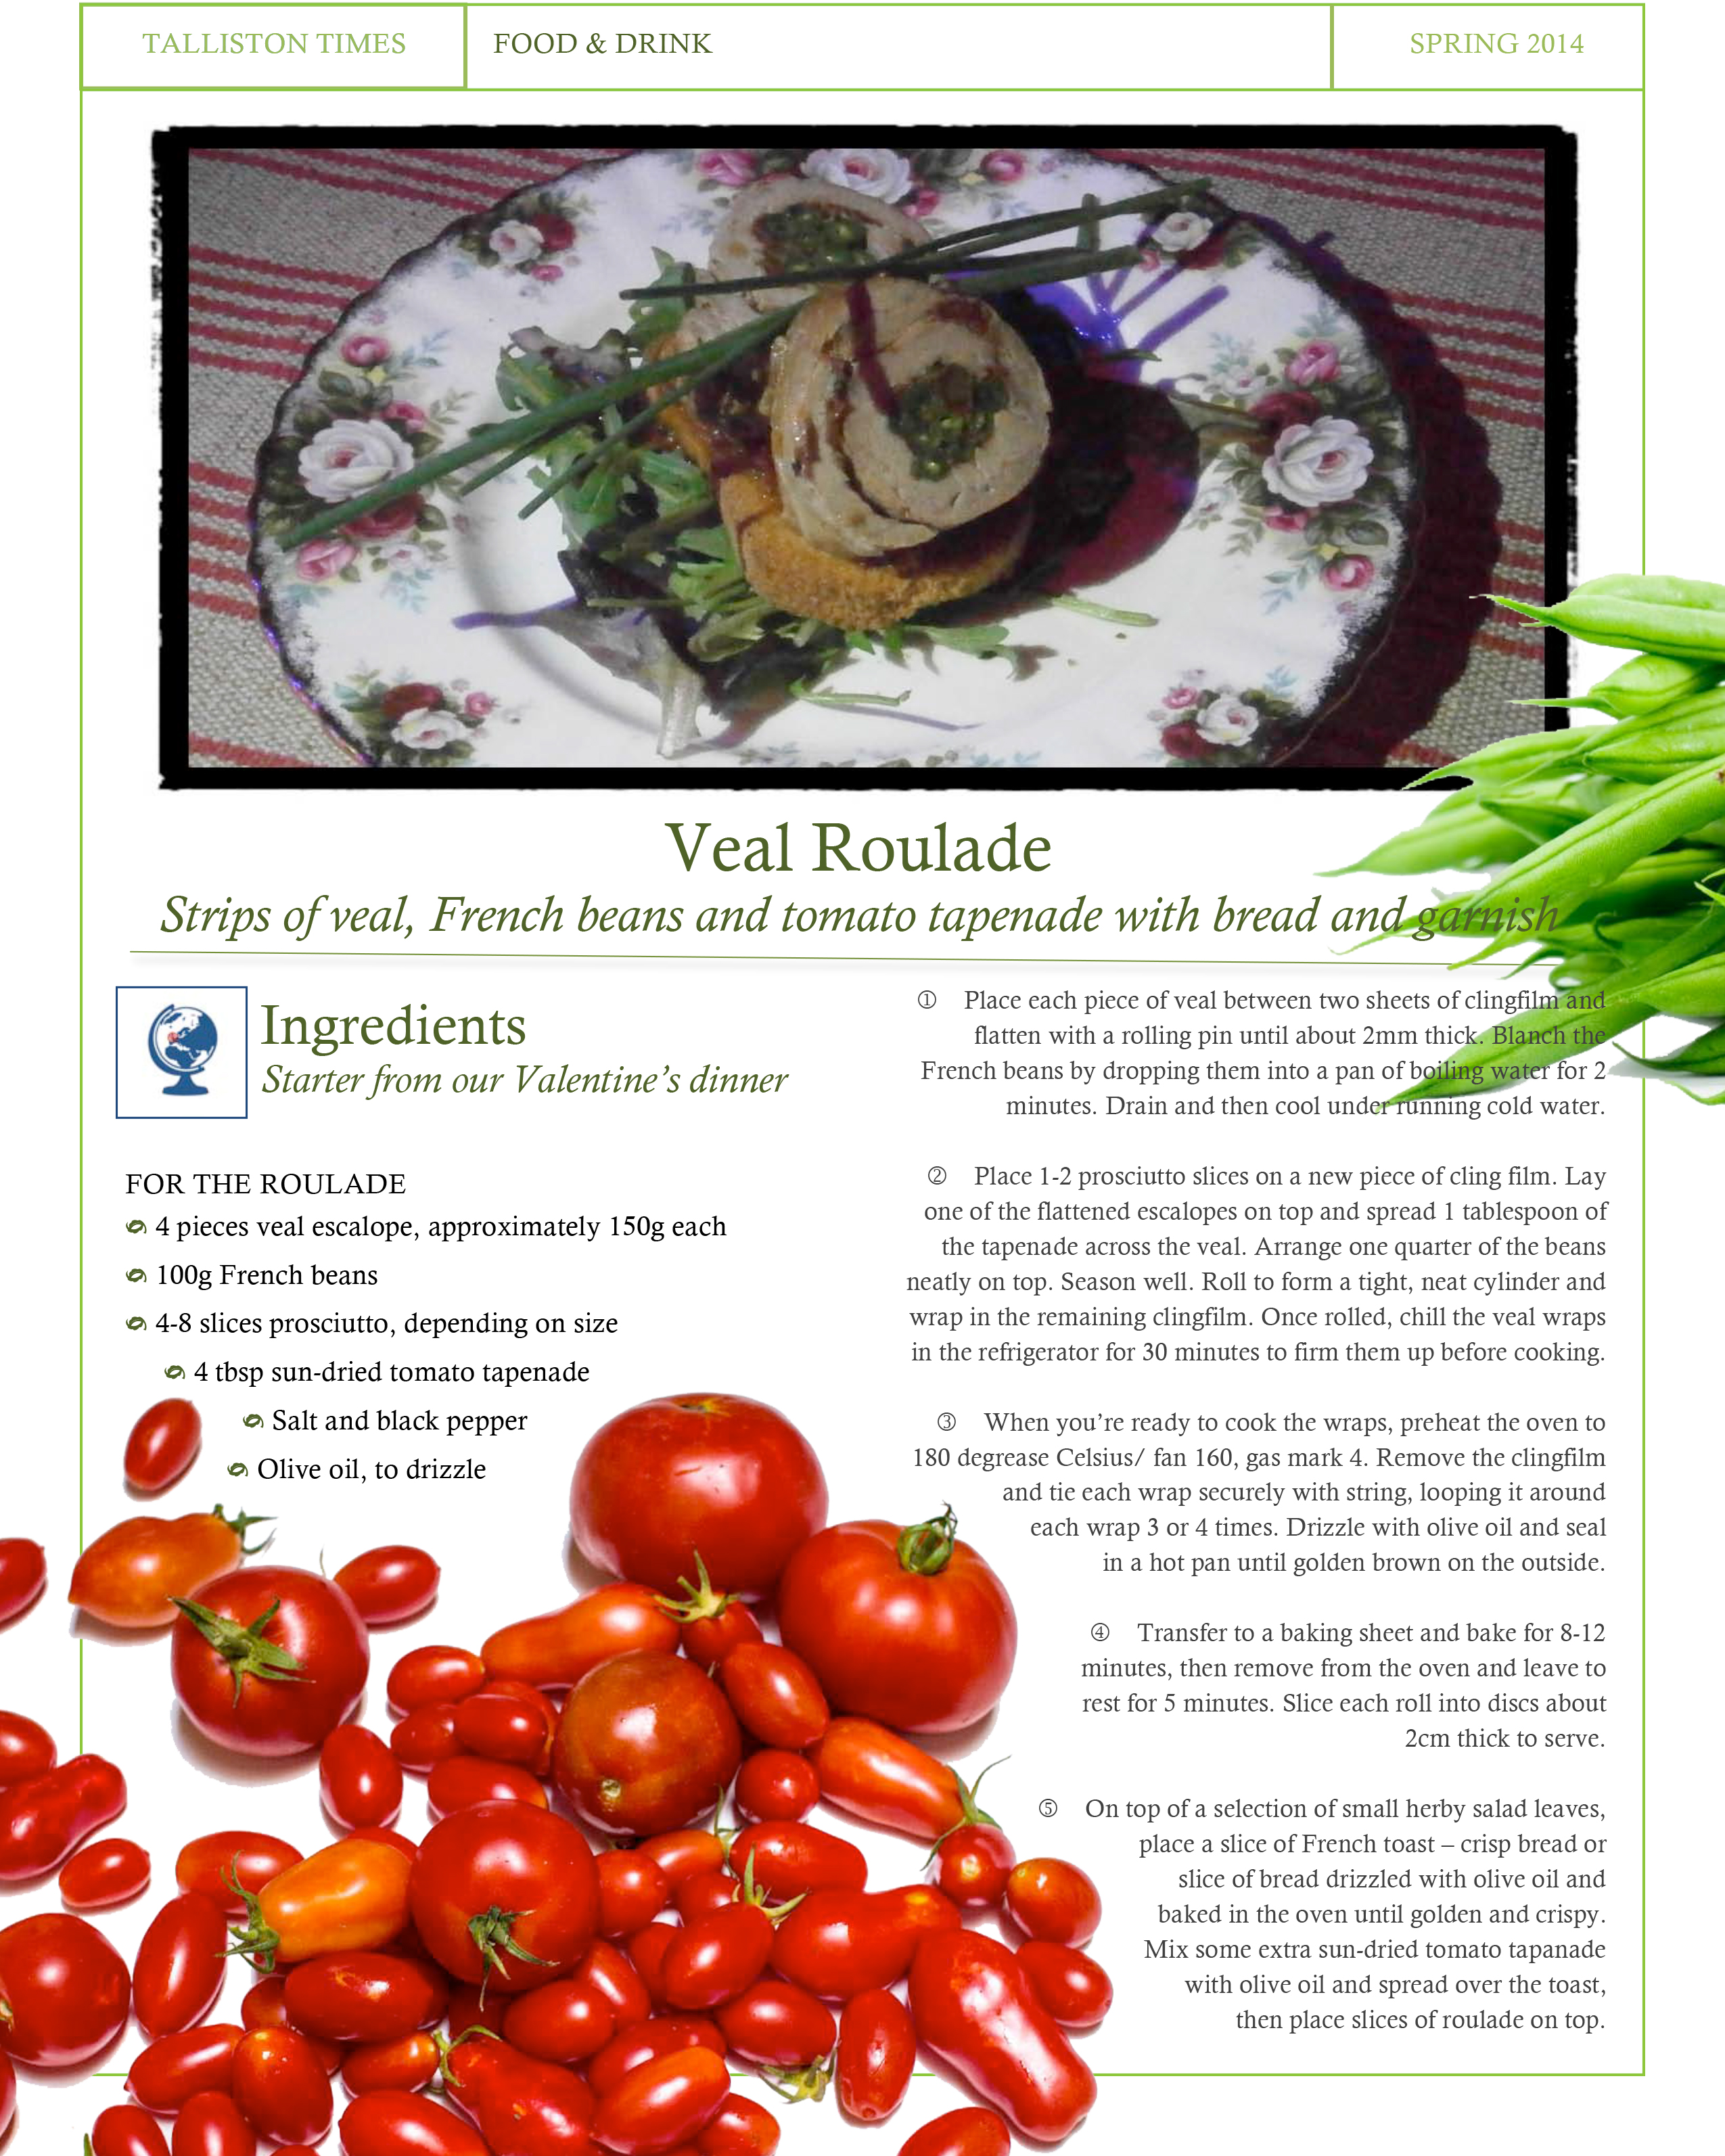 Recipe #4 Veal Roulade